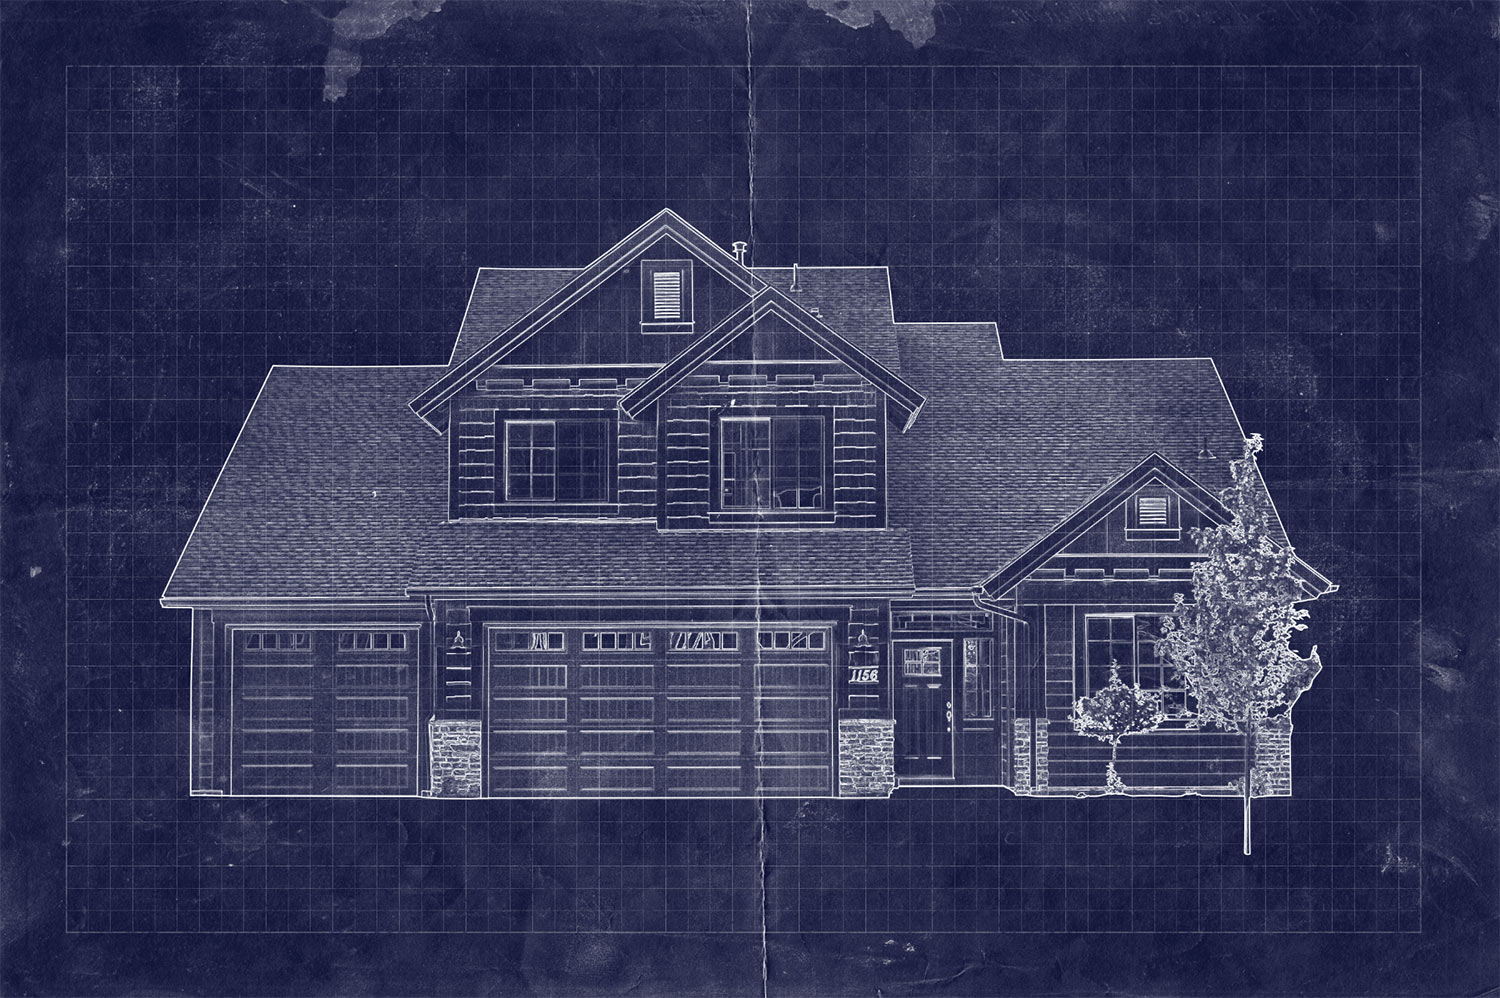 How To Create A Blueprint Effect In Adobe Photoshop